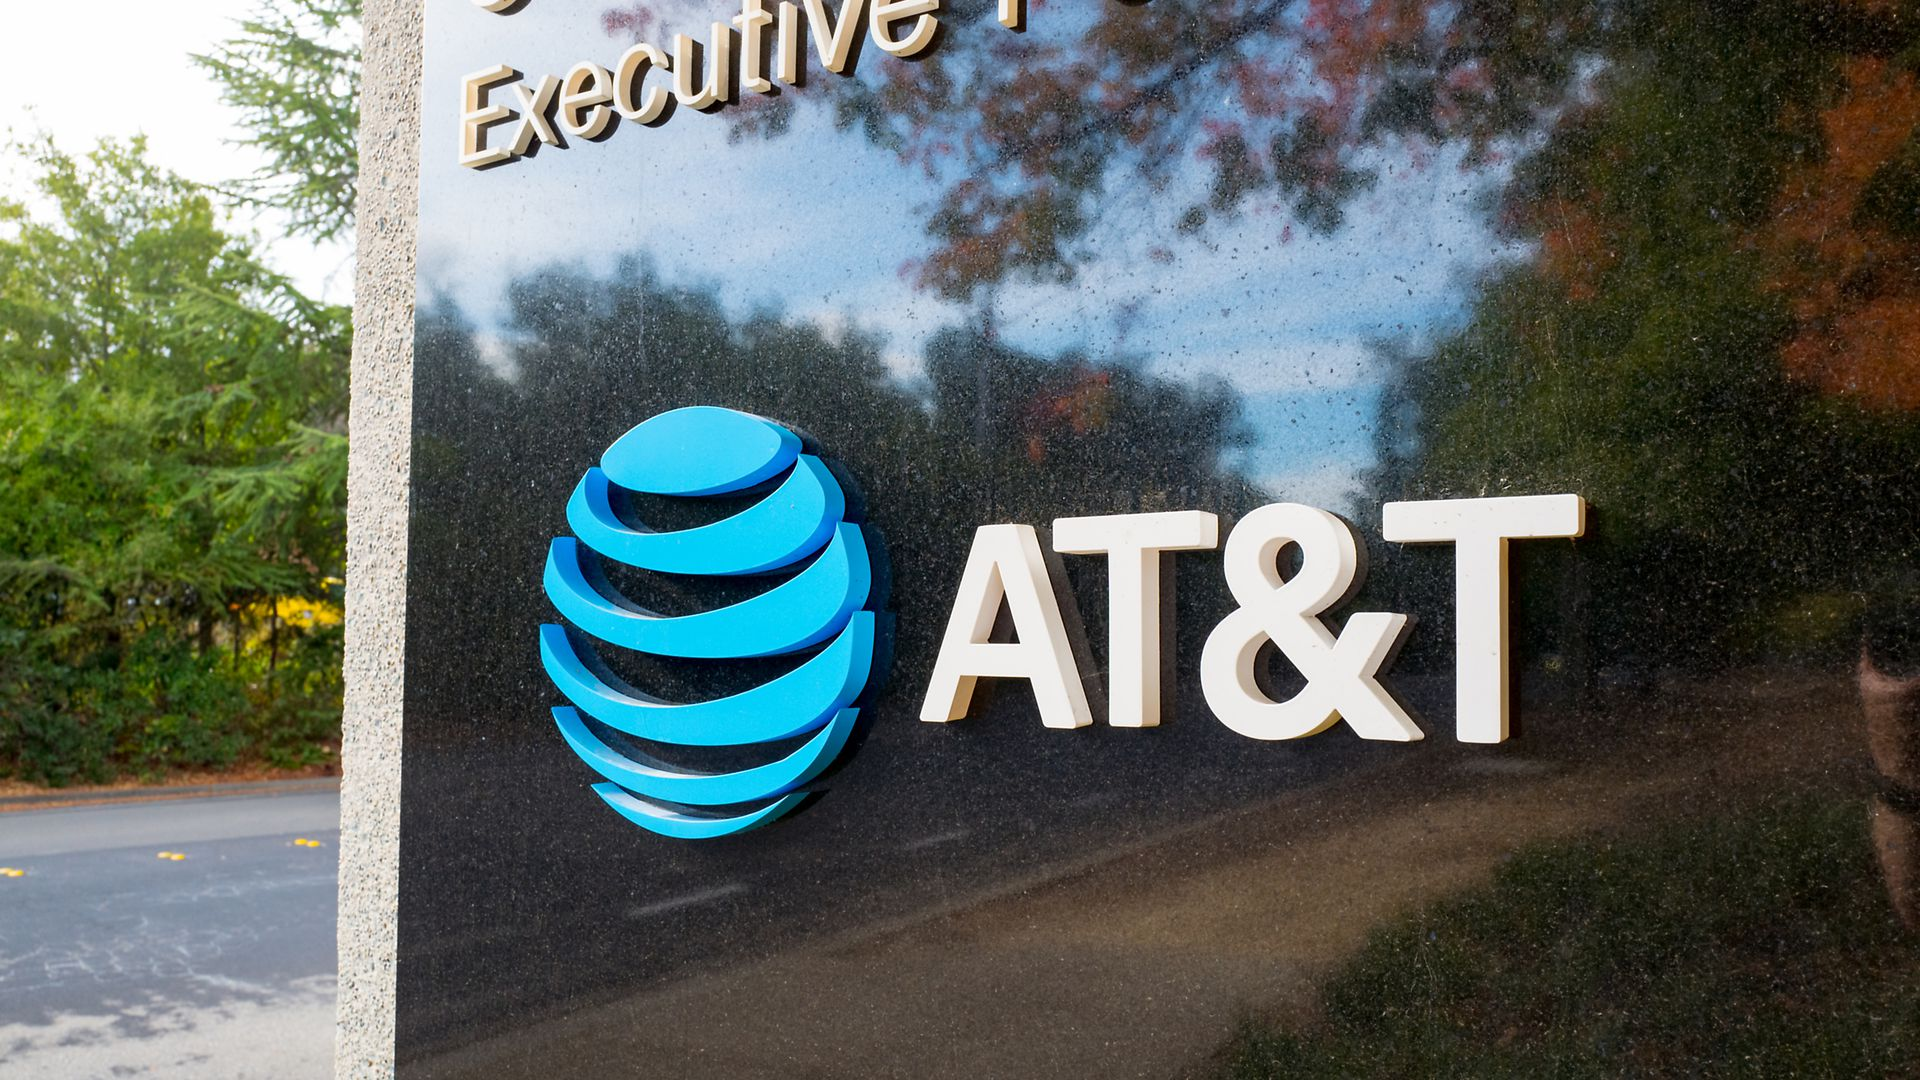 AT&T's logo on a sign